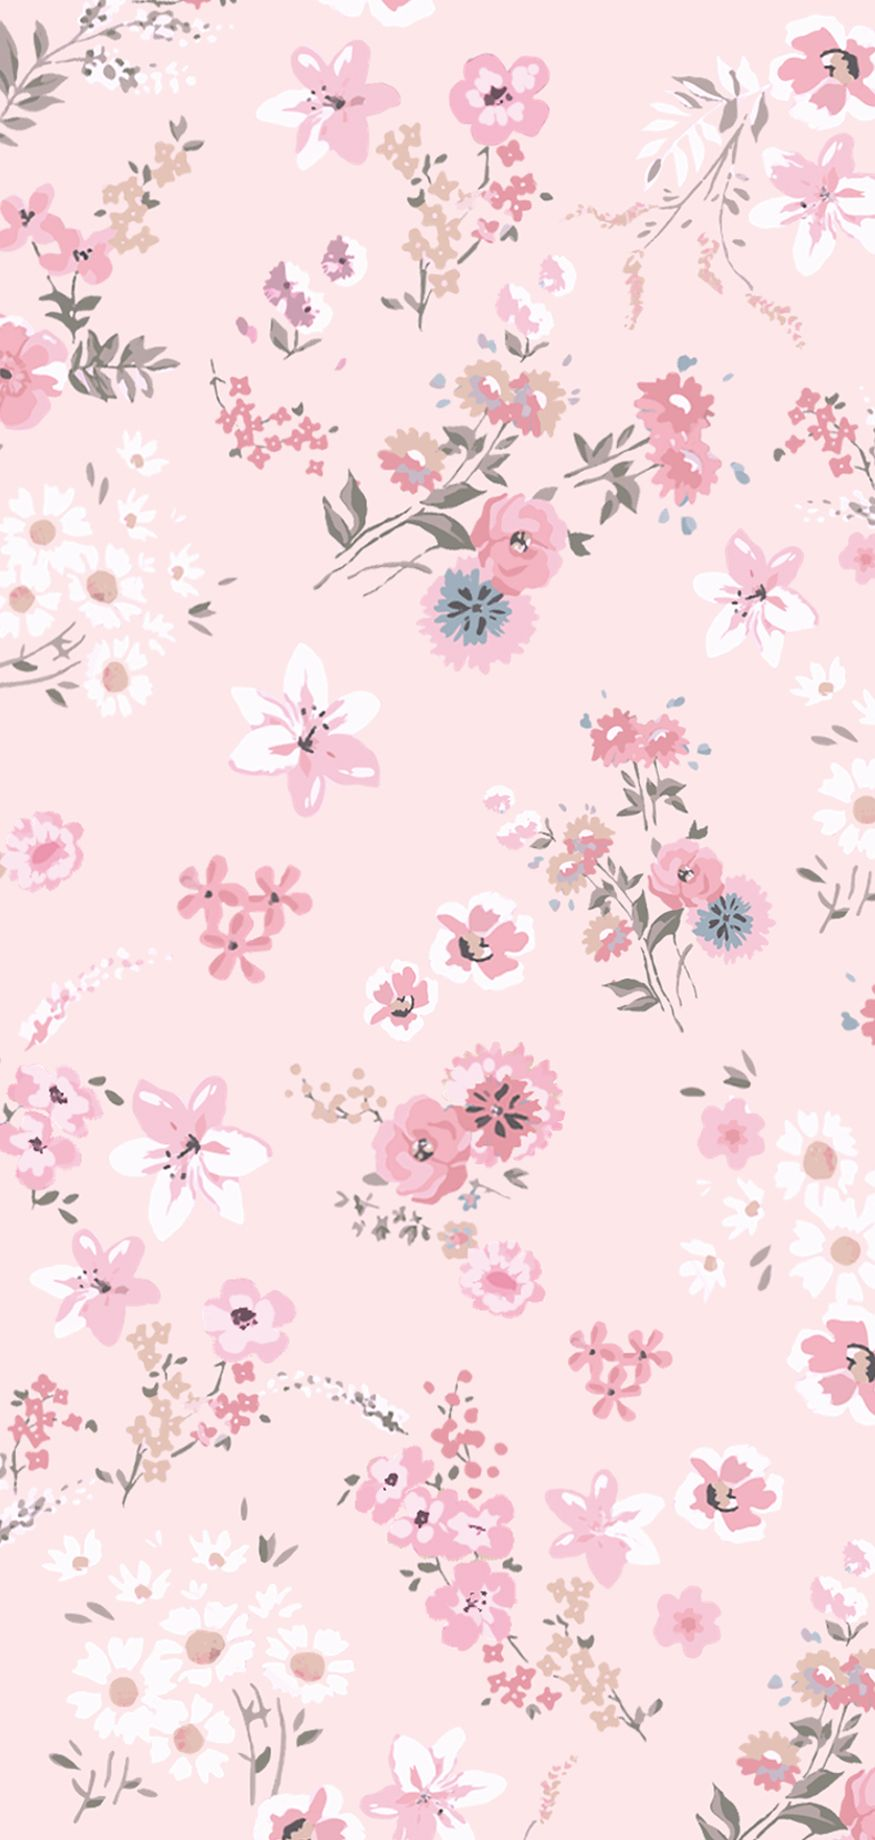 Flowers Roses Nature Flower Power Flower Lovers Pastel Colors Wallpaper Screensaver Iph Flower Phone Wallpaper Pastel Iphone Wallpaper Flower Wallpaper